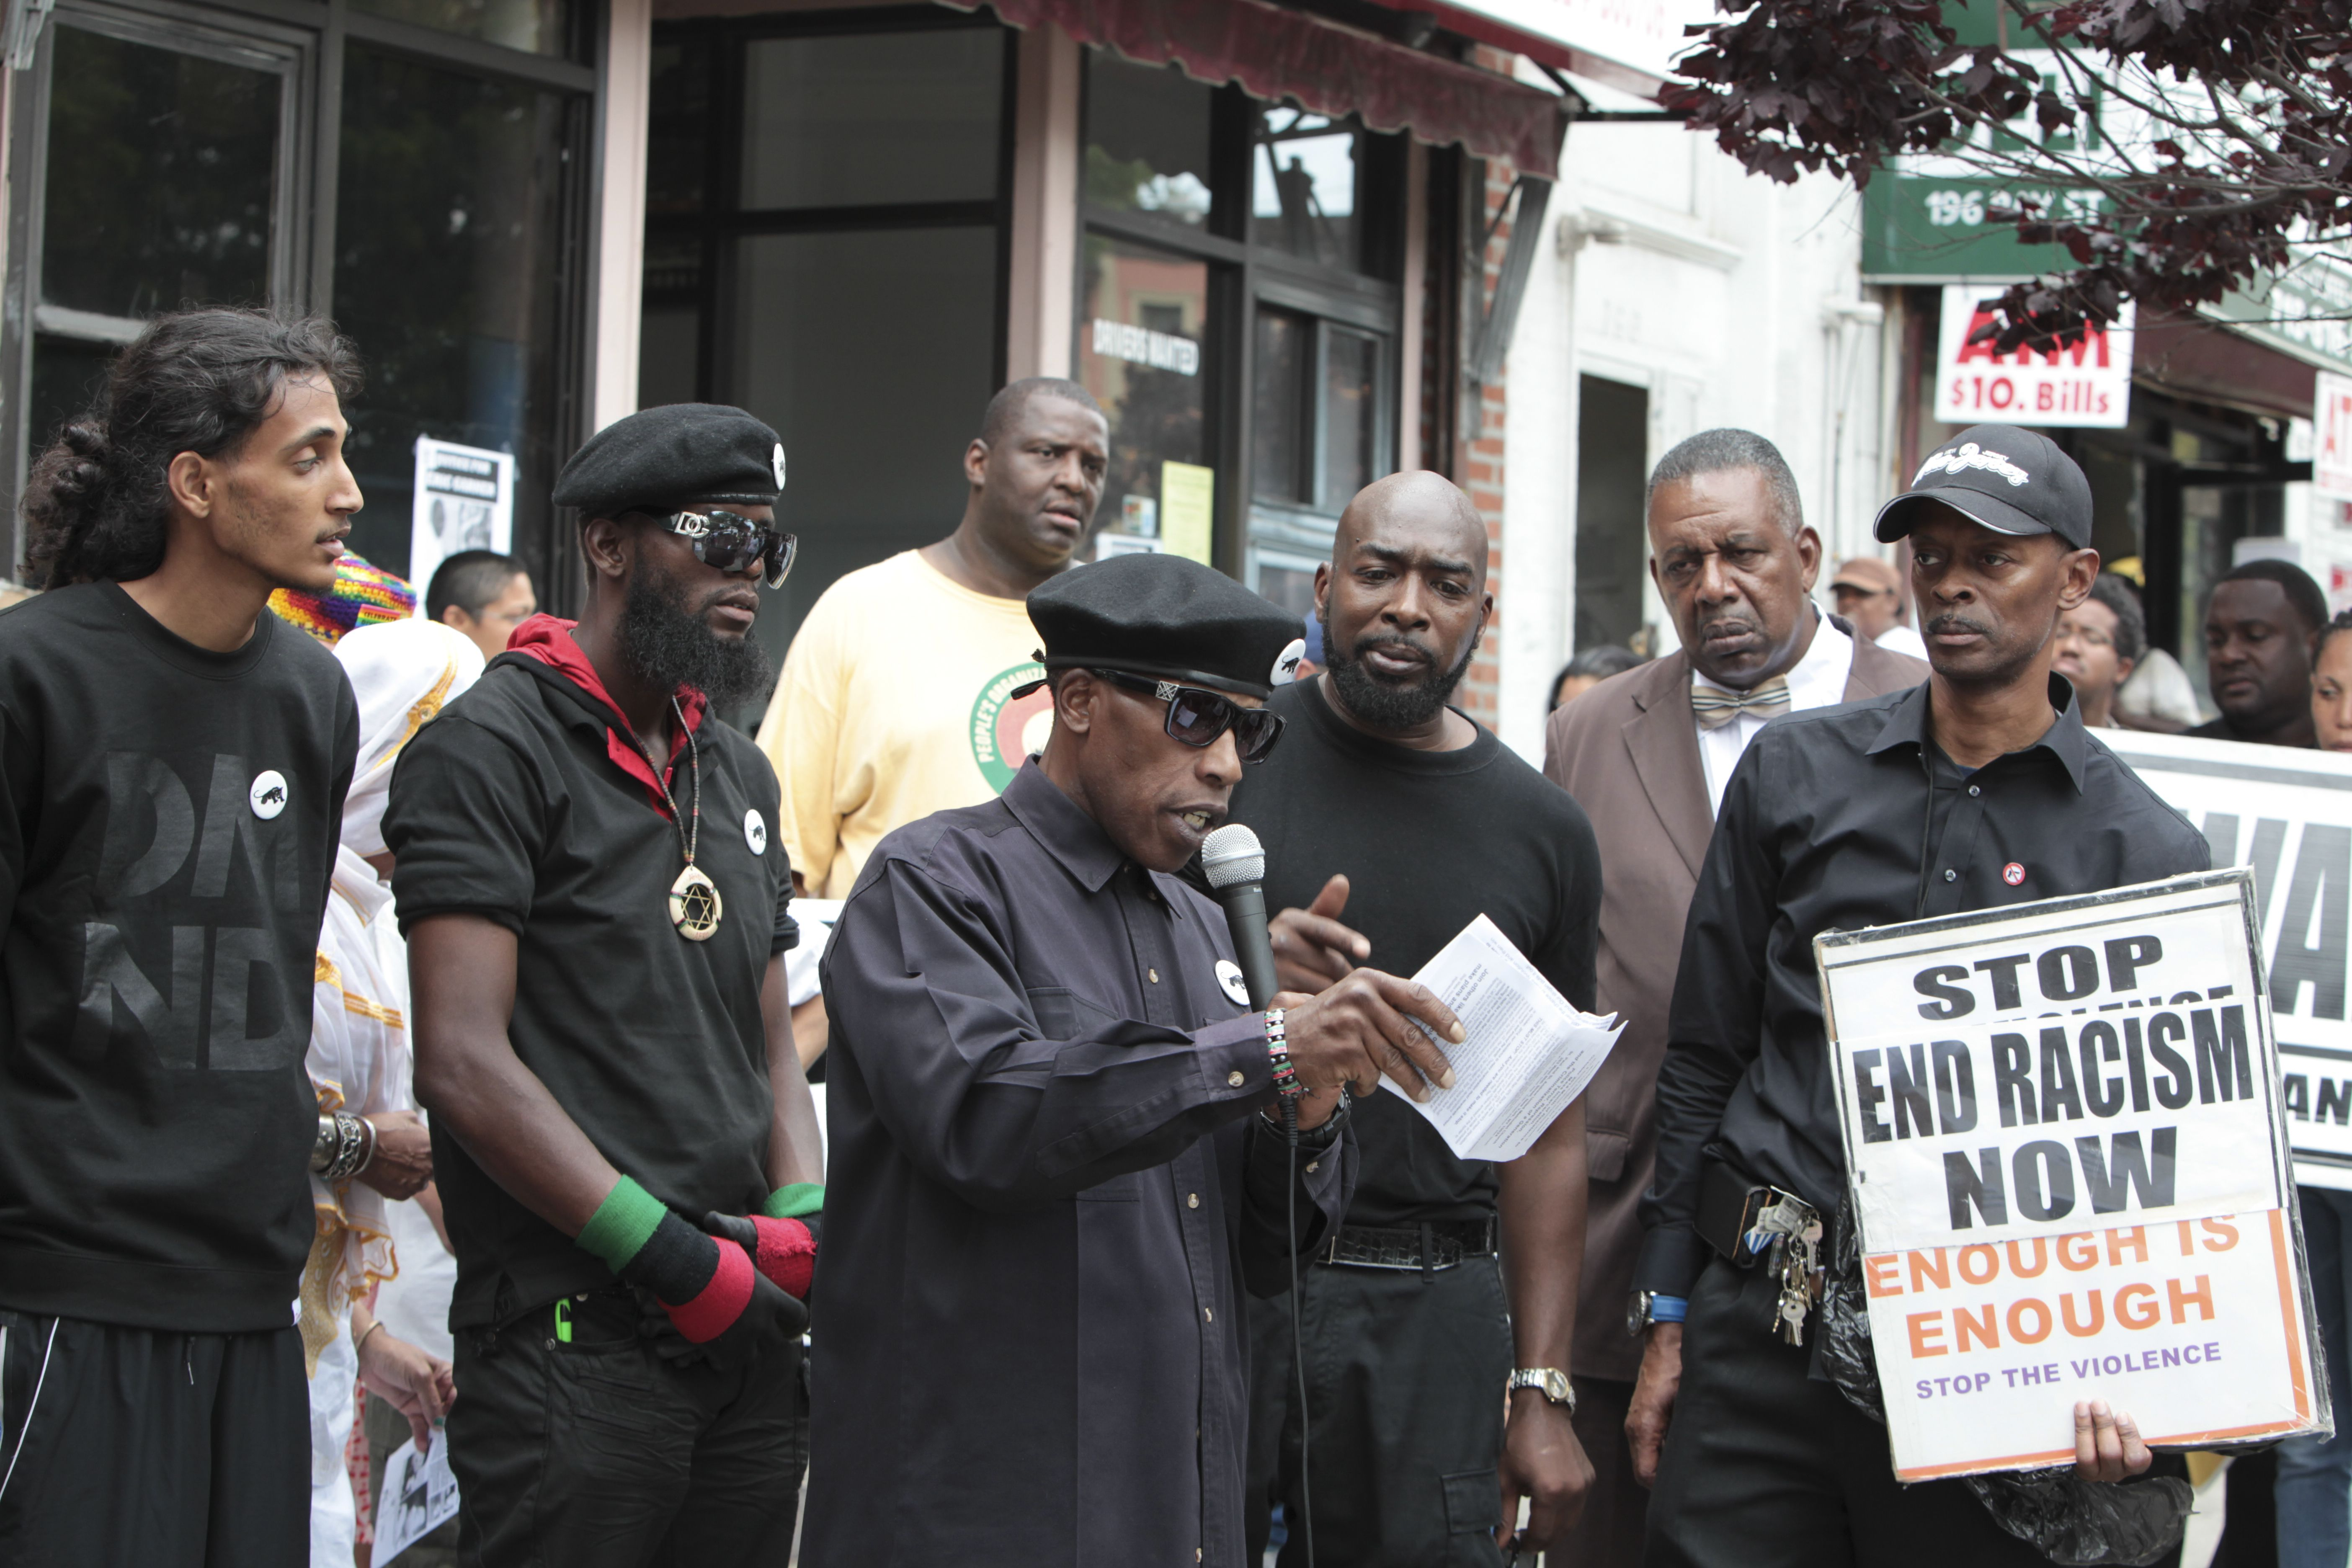 black panther party intimidating voters Intimidation is already underway in florida, courtesy of the afl-cio rather than the militarized uniforms and billyclubs used by the new black panthers in philadelphia in 2008, the latest threat is a letter promising lawsuits two florida voters [update 7:26 pm cdt – see a comment in the comment section.